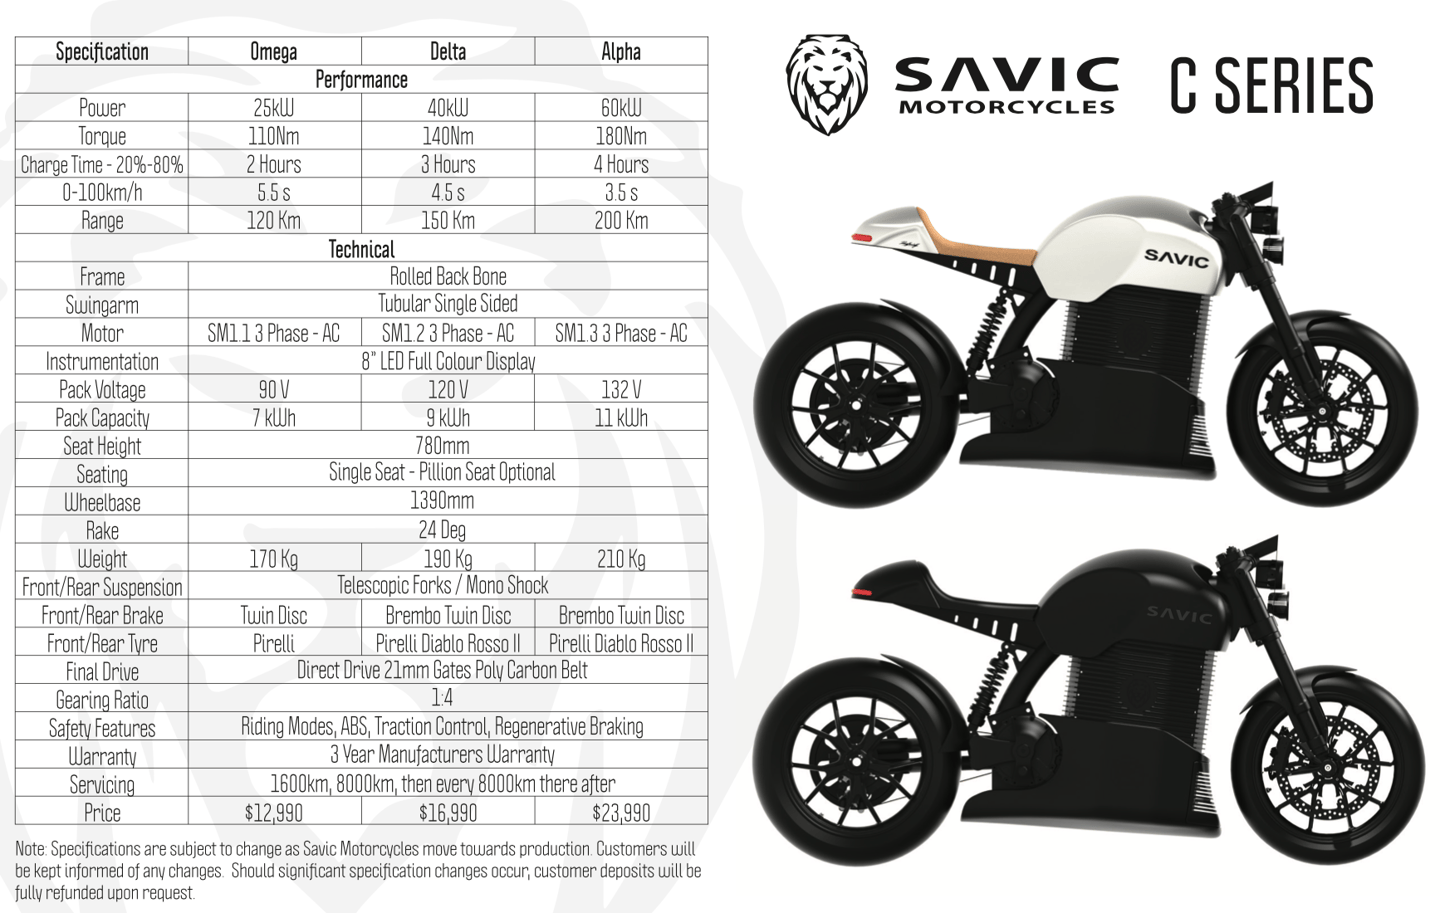 The spec sheets for the forthcoming Savic motorcycles